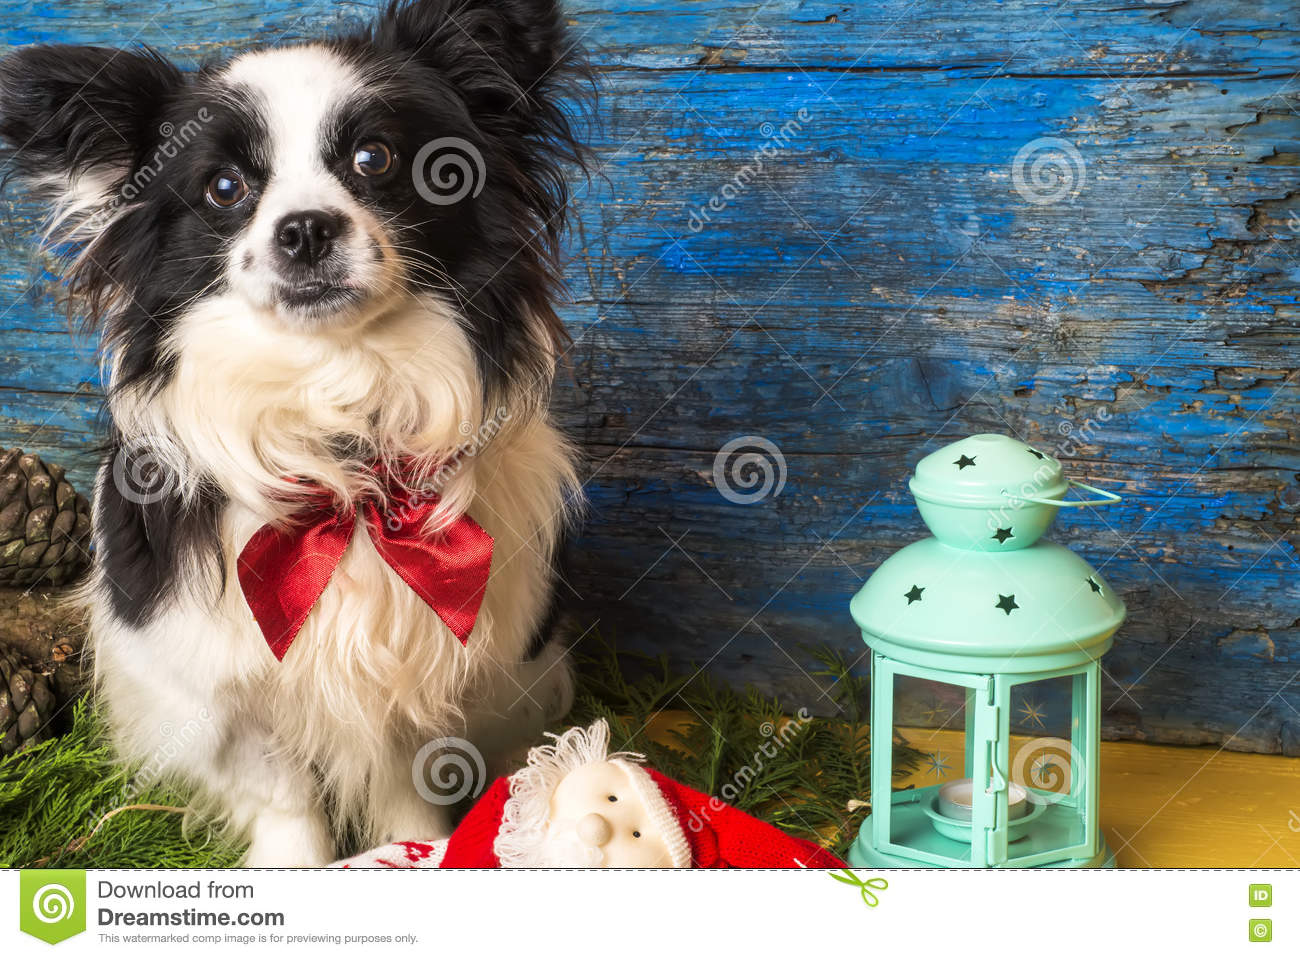 Small dog Christmas card stock photo. Image of xmas, cards - 77483210